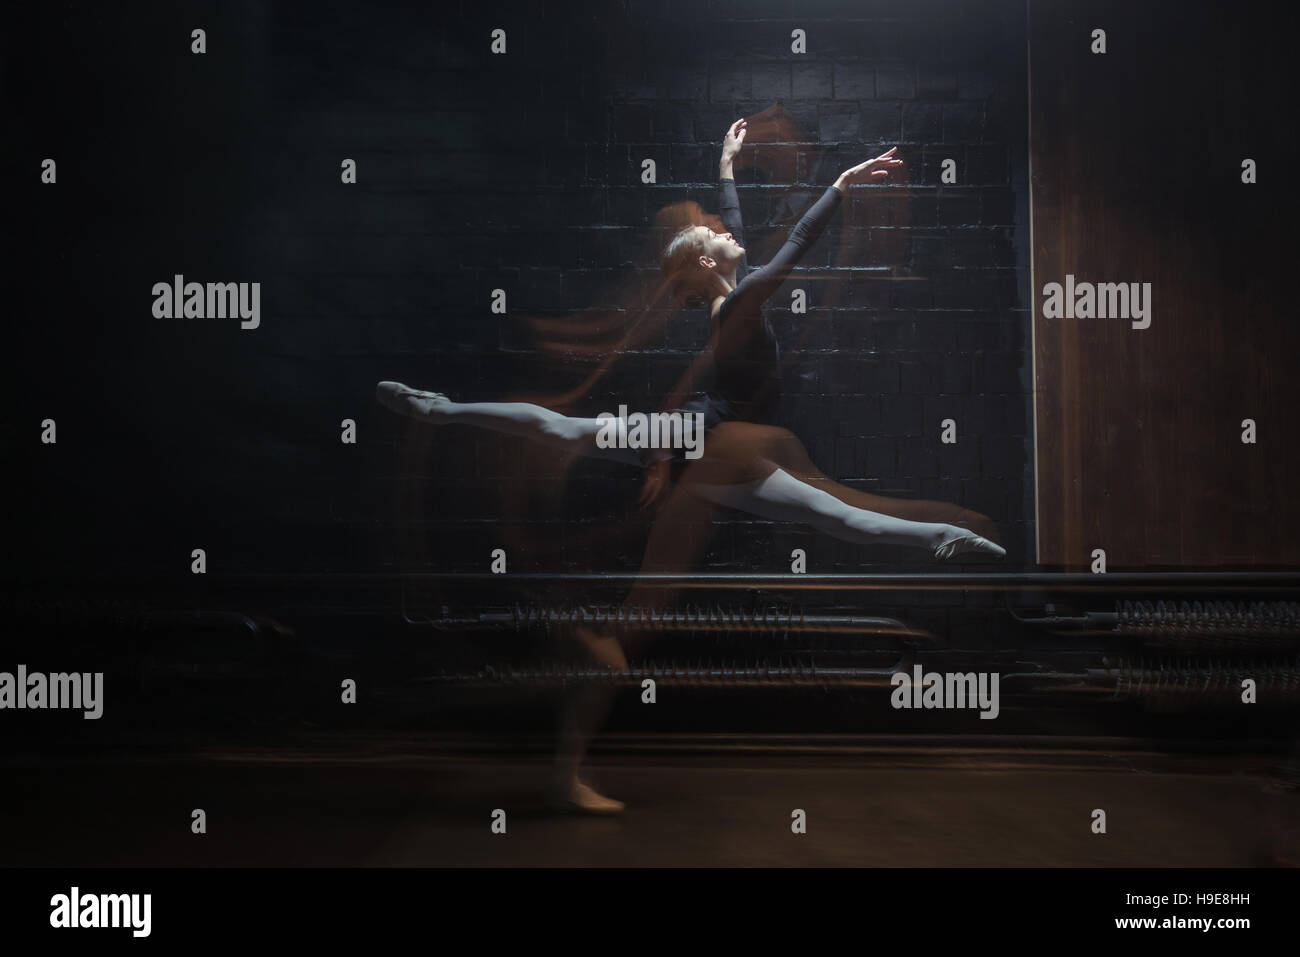 Delighted gymnast jumping on the dark background - Stock Image